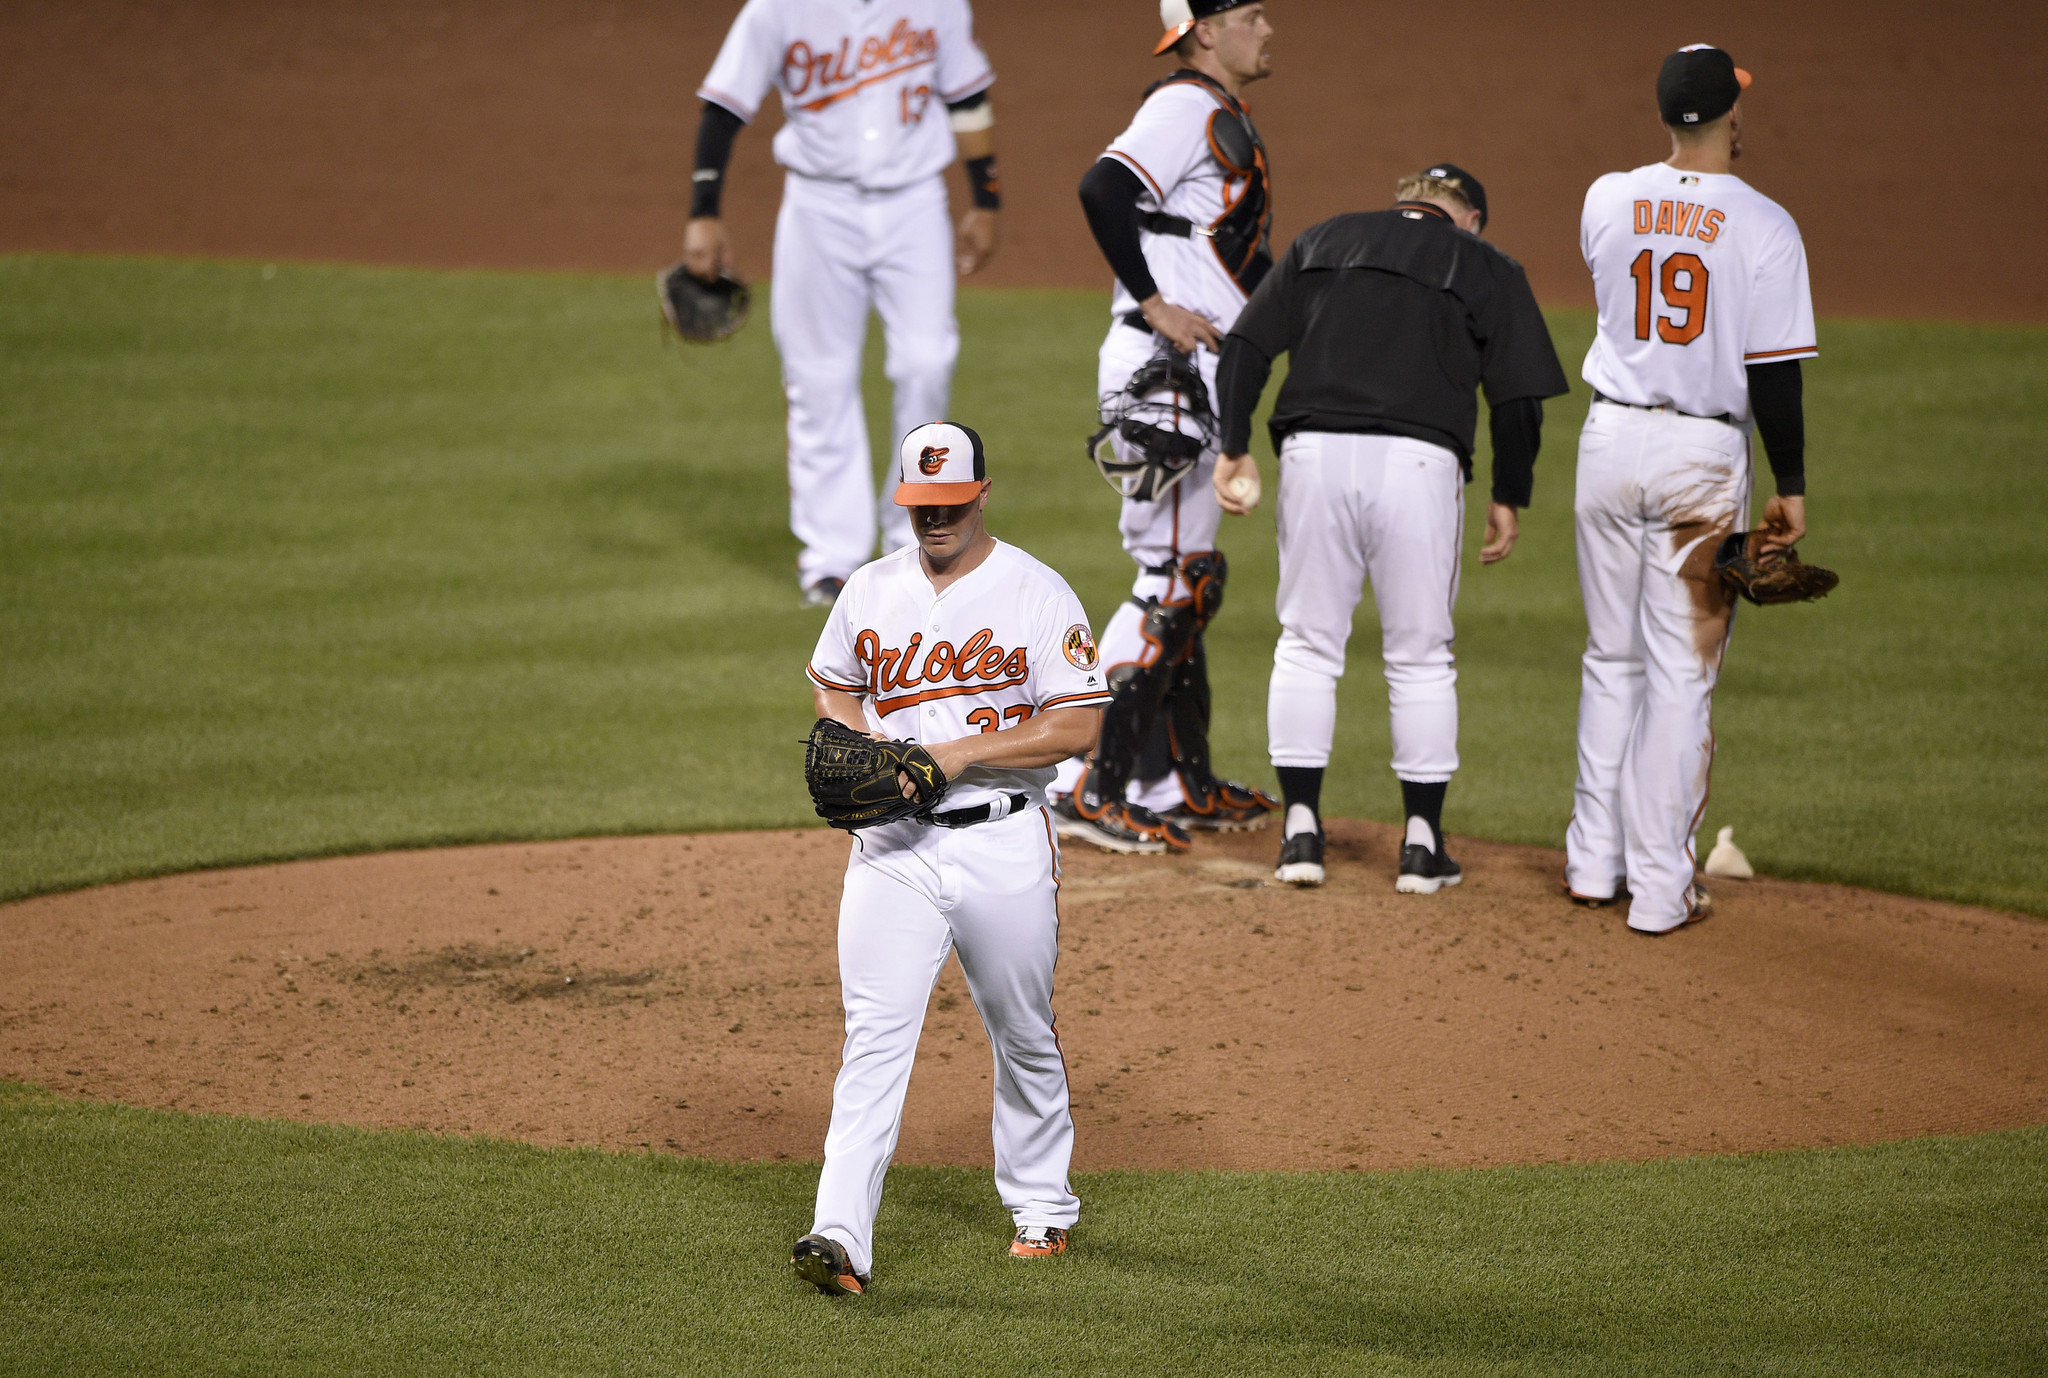 Bal-dylan-bundy-has-perfect-game-derailed-by-home-runs-in-third-start-for-orioles-20160727